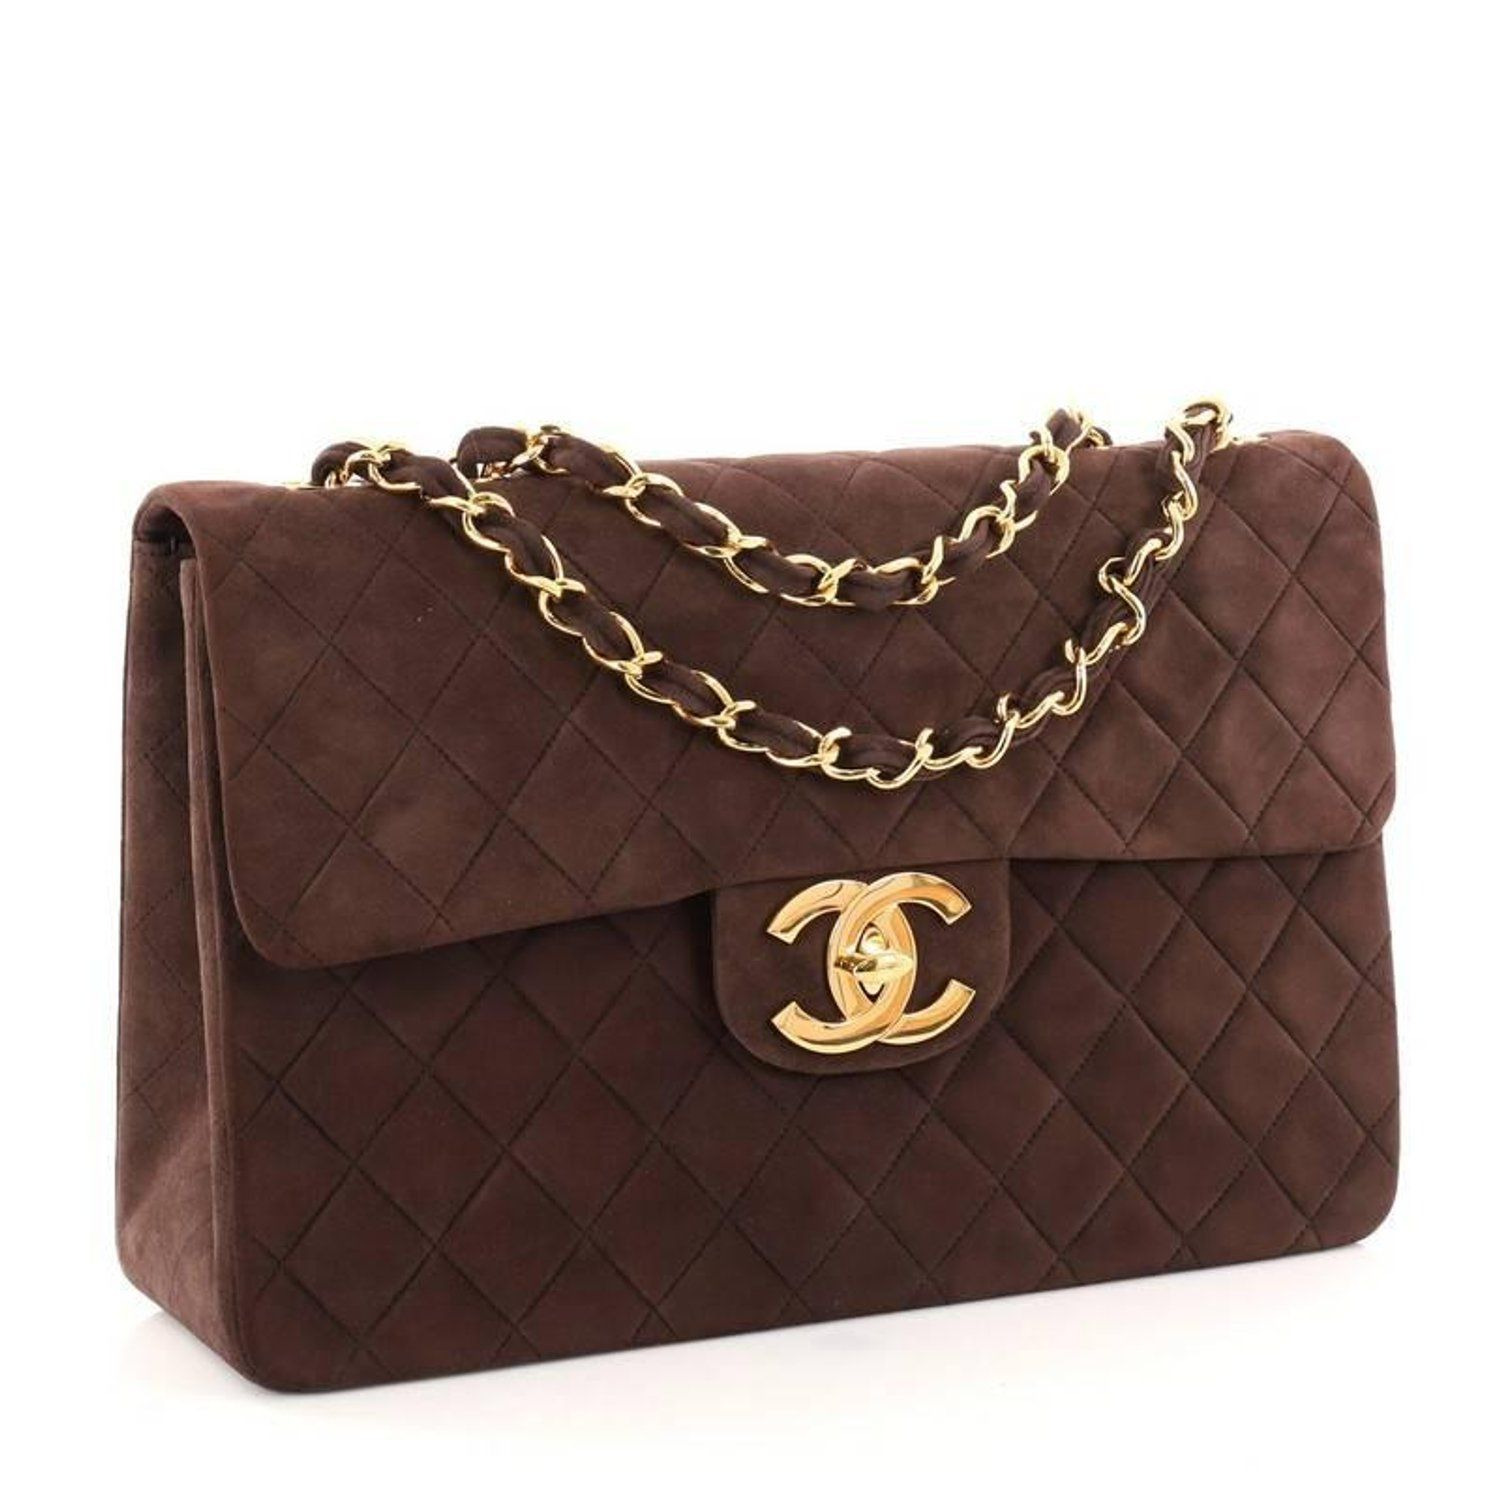 485fe503d4e5ed Chanel Vintage Classic Single Flap Bag Quilted Suede Maxi For Sale at  1stdibs